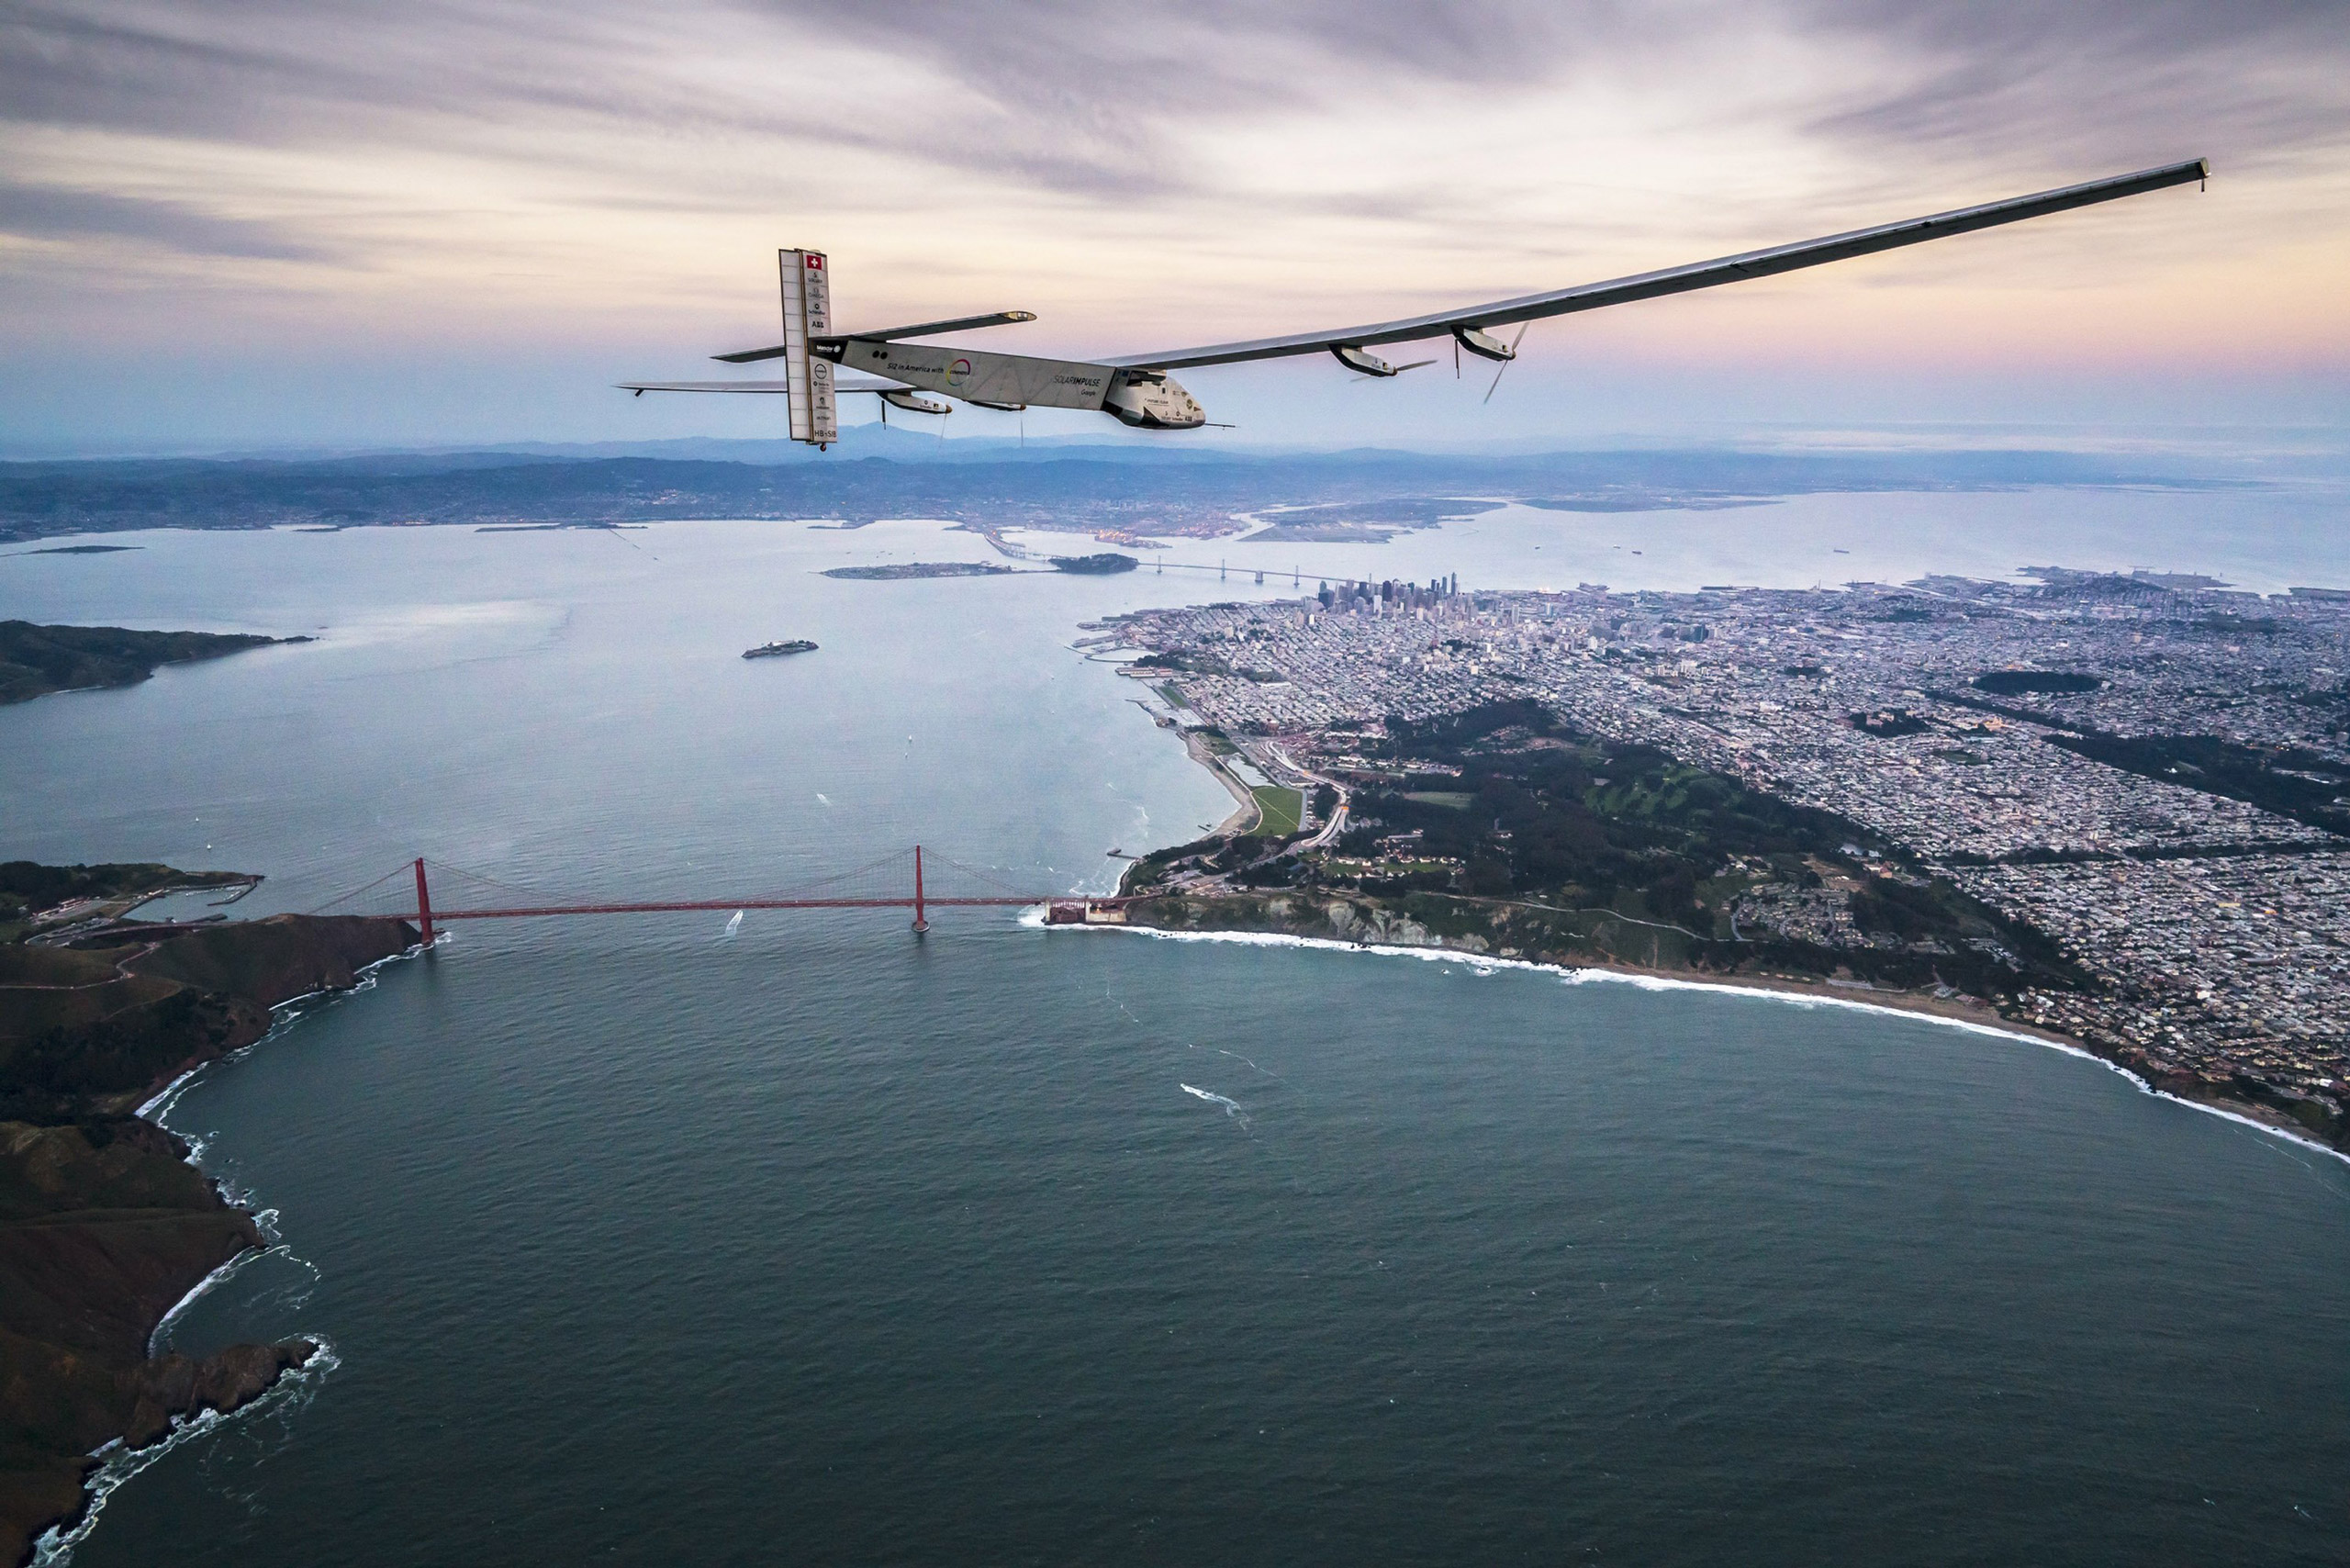 Solar powered plane 'Solar Impulse 2', piloted by Swiss adventurer Bertrand Piccard, flies over the Golden Gate bridge in San Francisco before landing in Mountain View, Calif., on April 23, 2016.